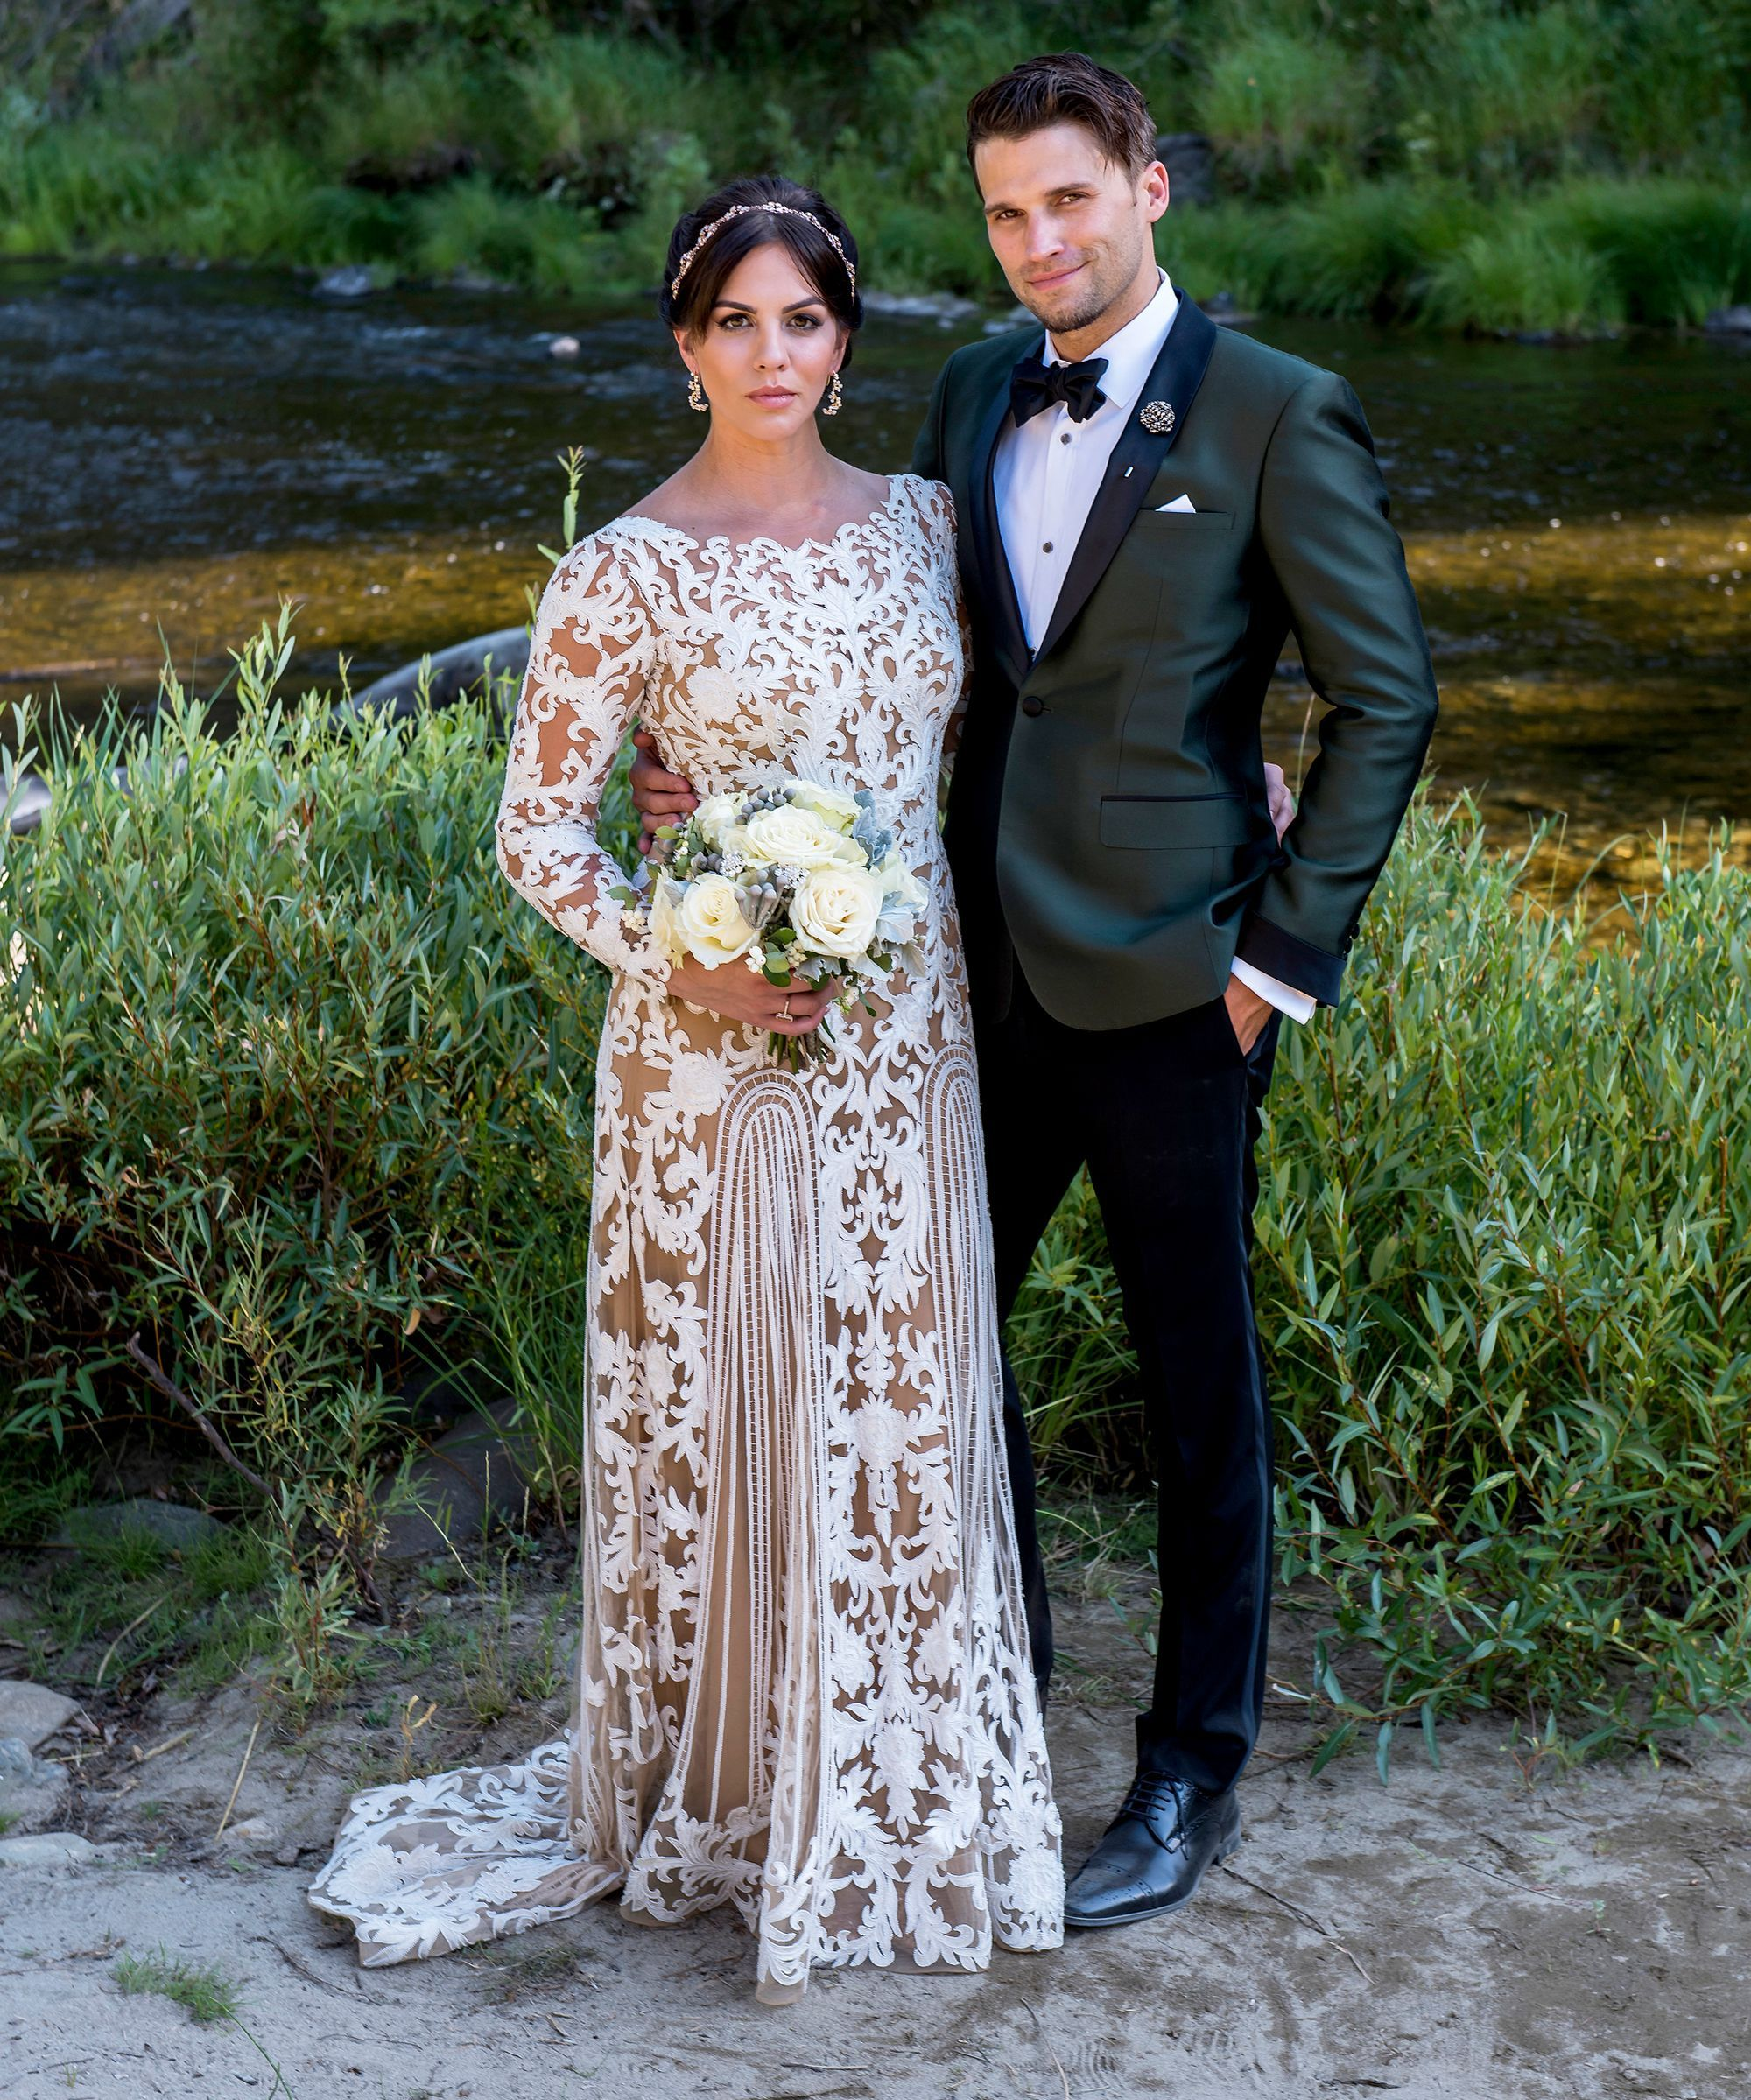 The Major Problem With This Vanderpump Rules Wedding In 2020